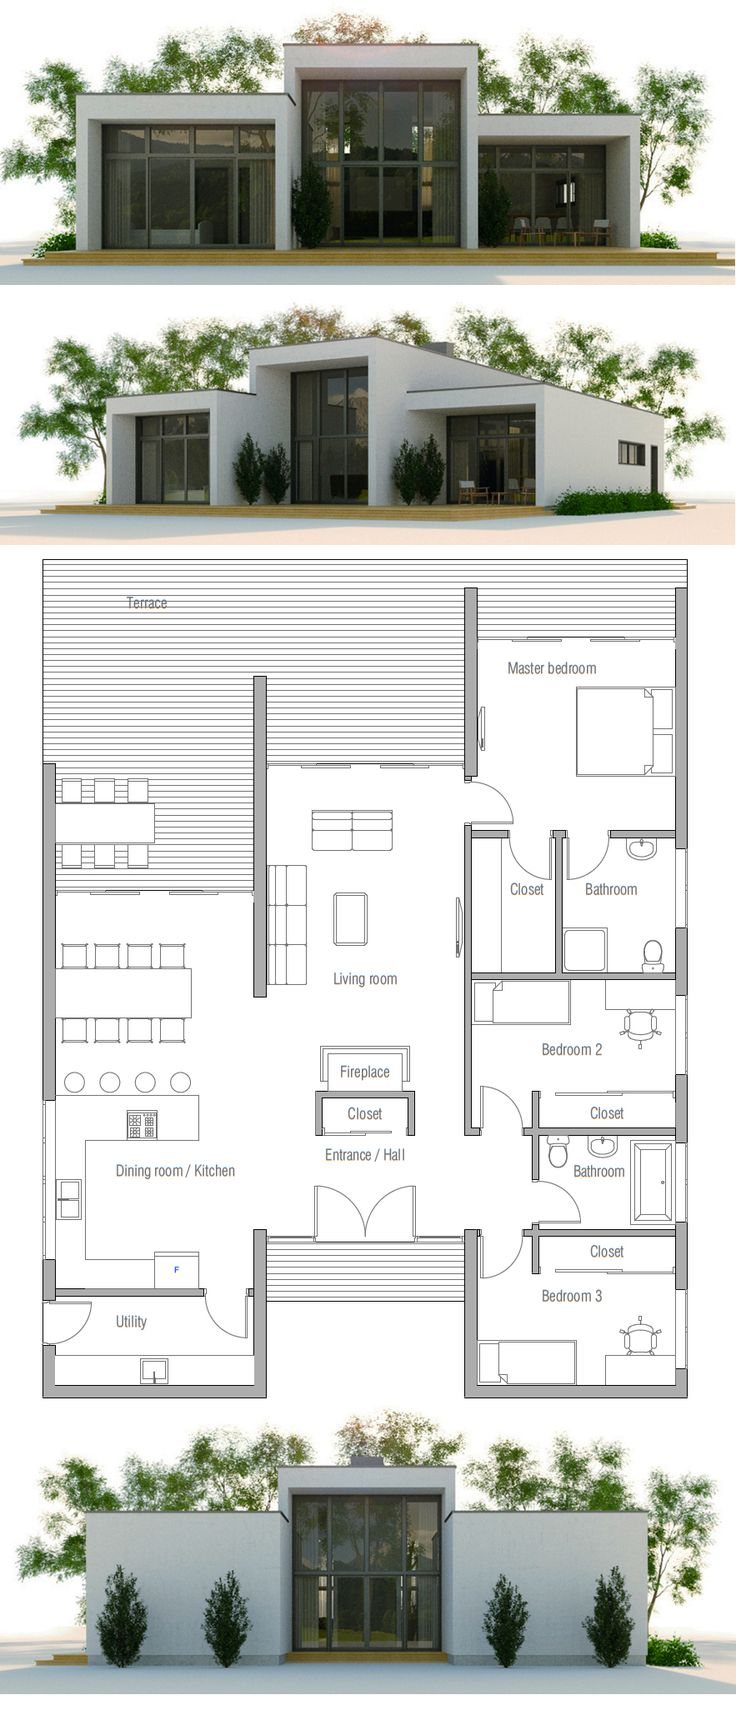 Modern House Minimalist Design best 25+ minimalist house ideas on pinterest | minimalist living